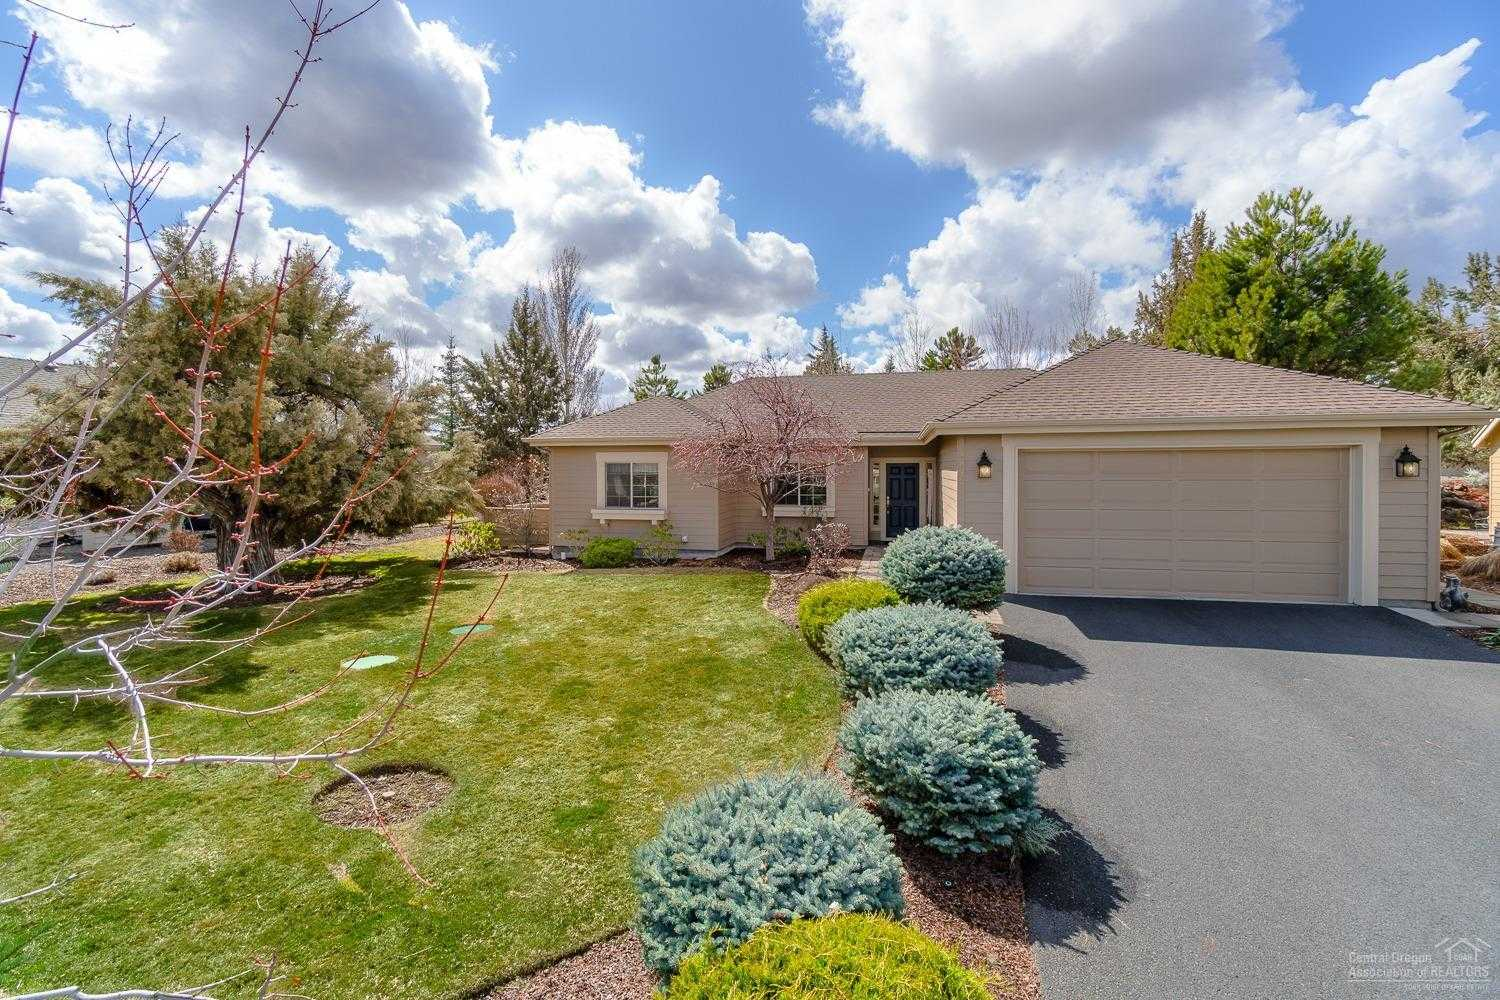 $387,500 - 2Br/2Ba -  for Sale in The Falls, Redmond